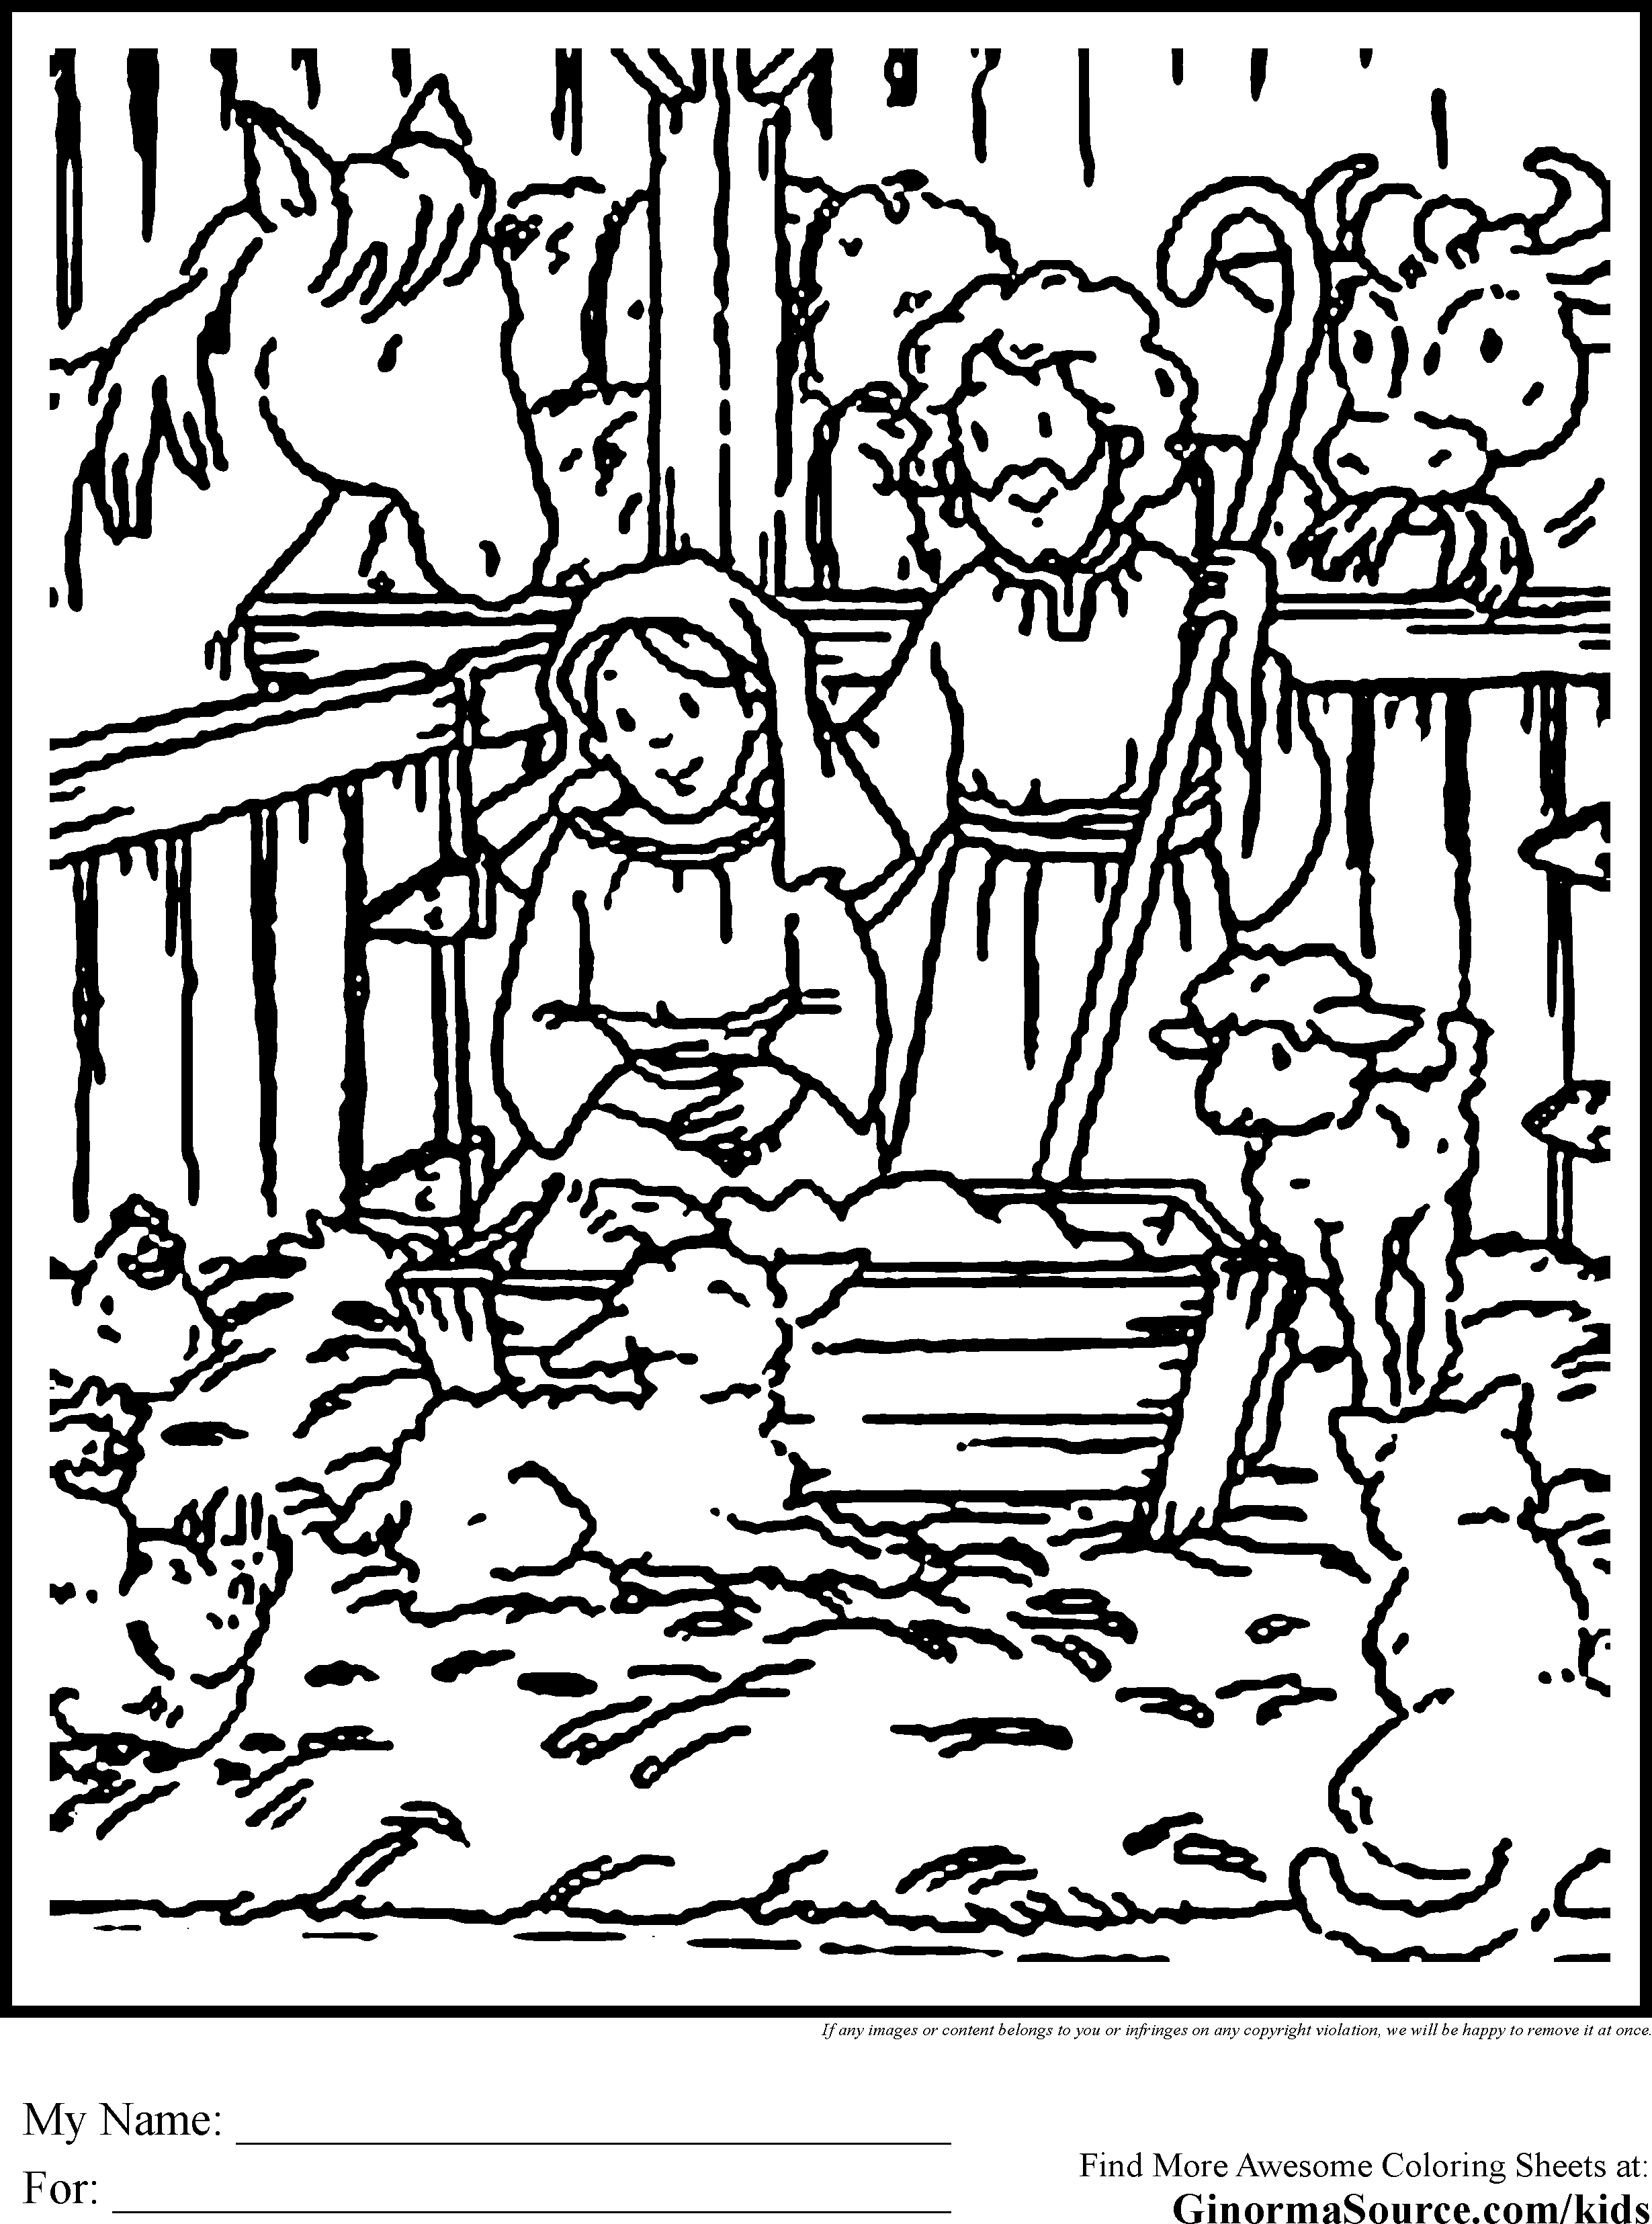 Kneeling Santa Coloring Page With Christmas Pages To Print For Class Gift Bags